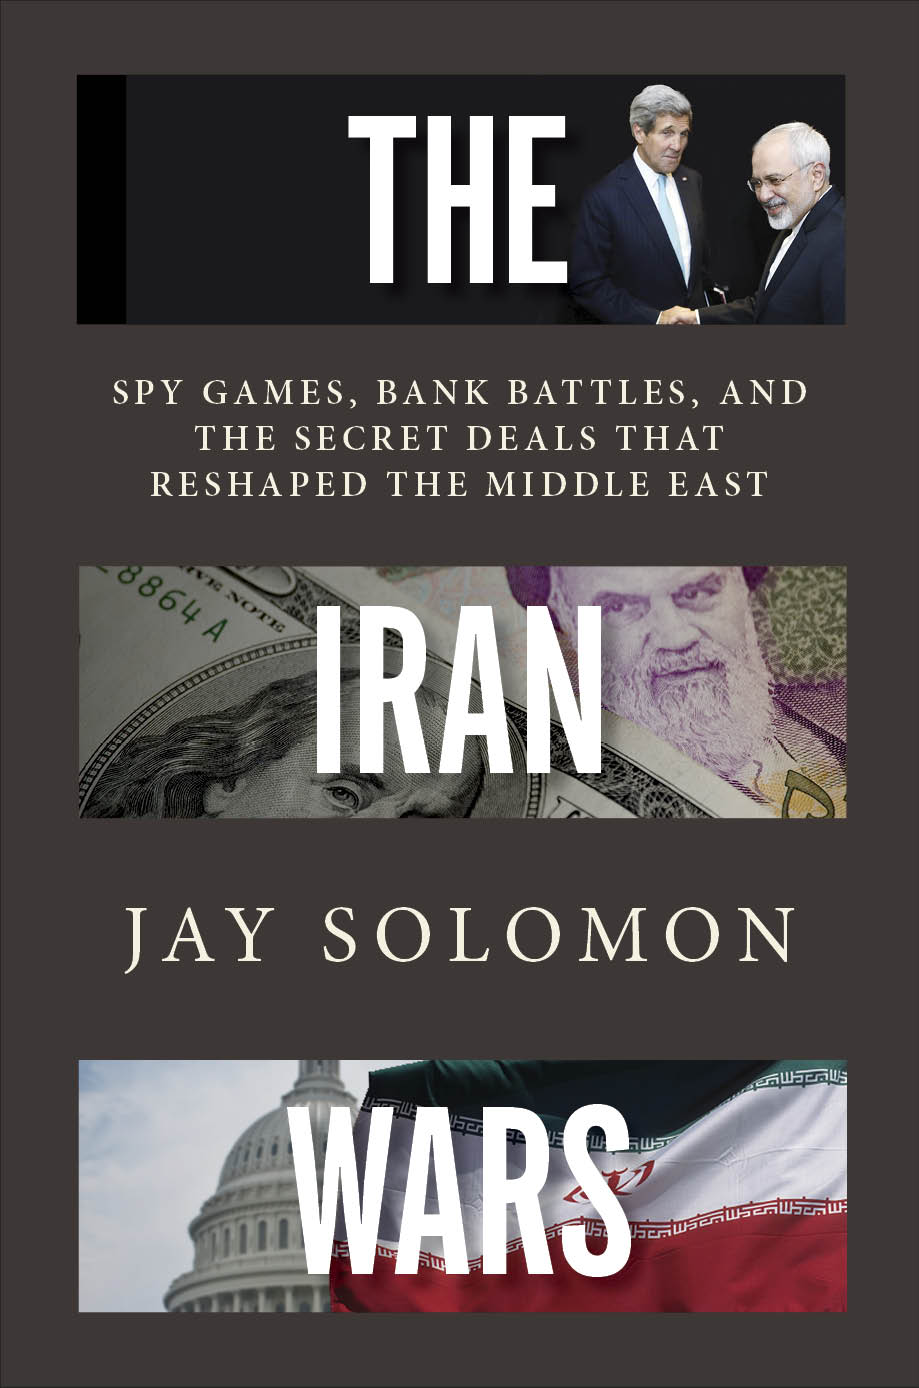 the_iran_wars_jay_solomon.JPG